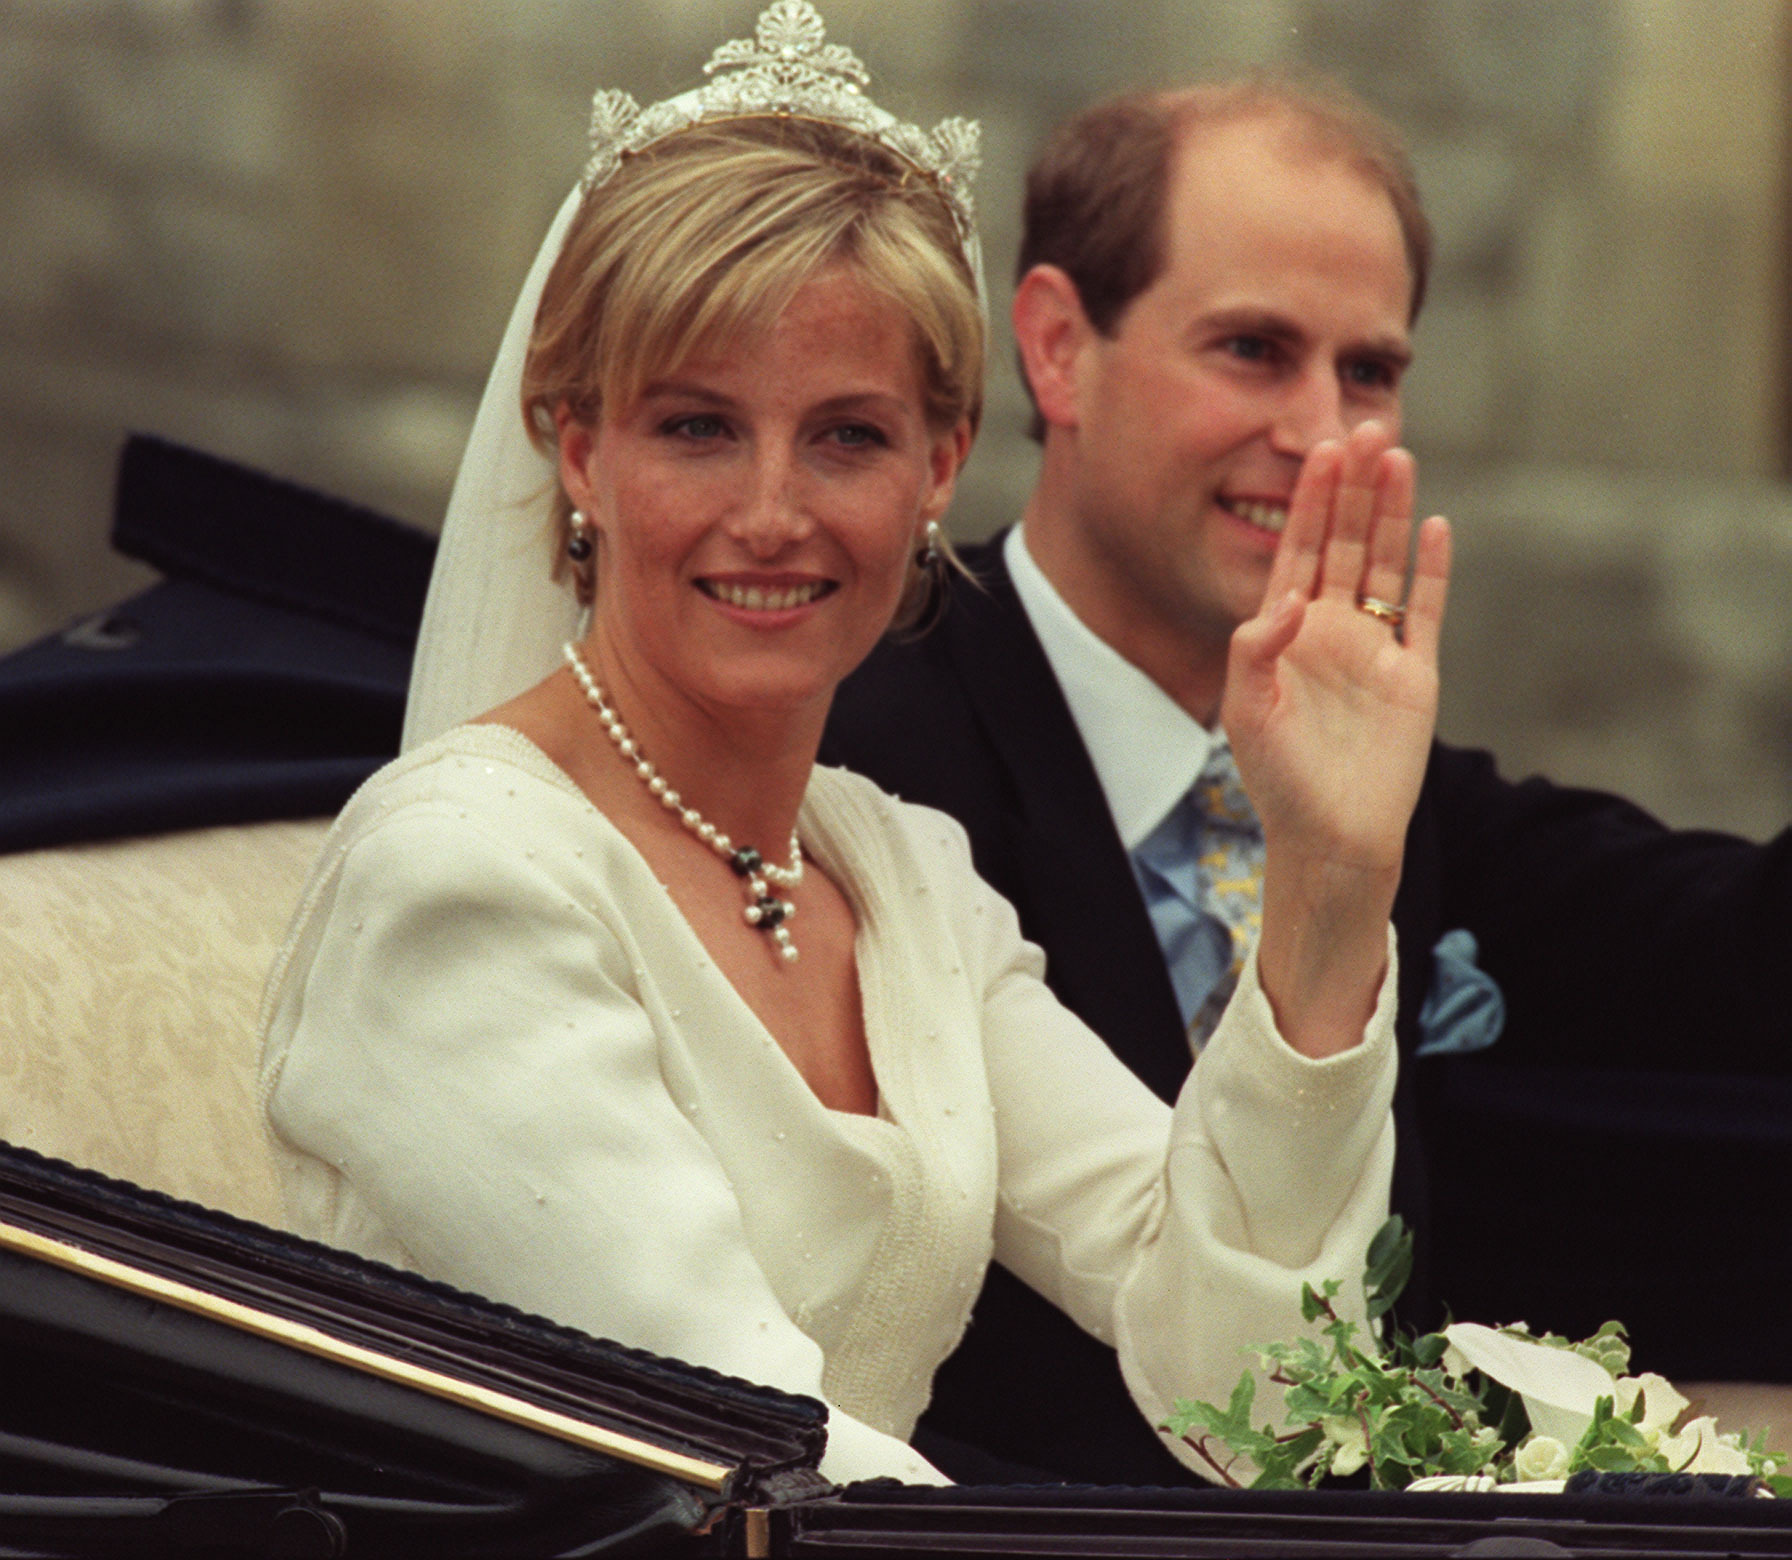 The marriage of The Earl and Countess of Wessex. © Press Association